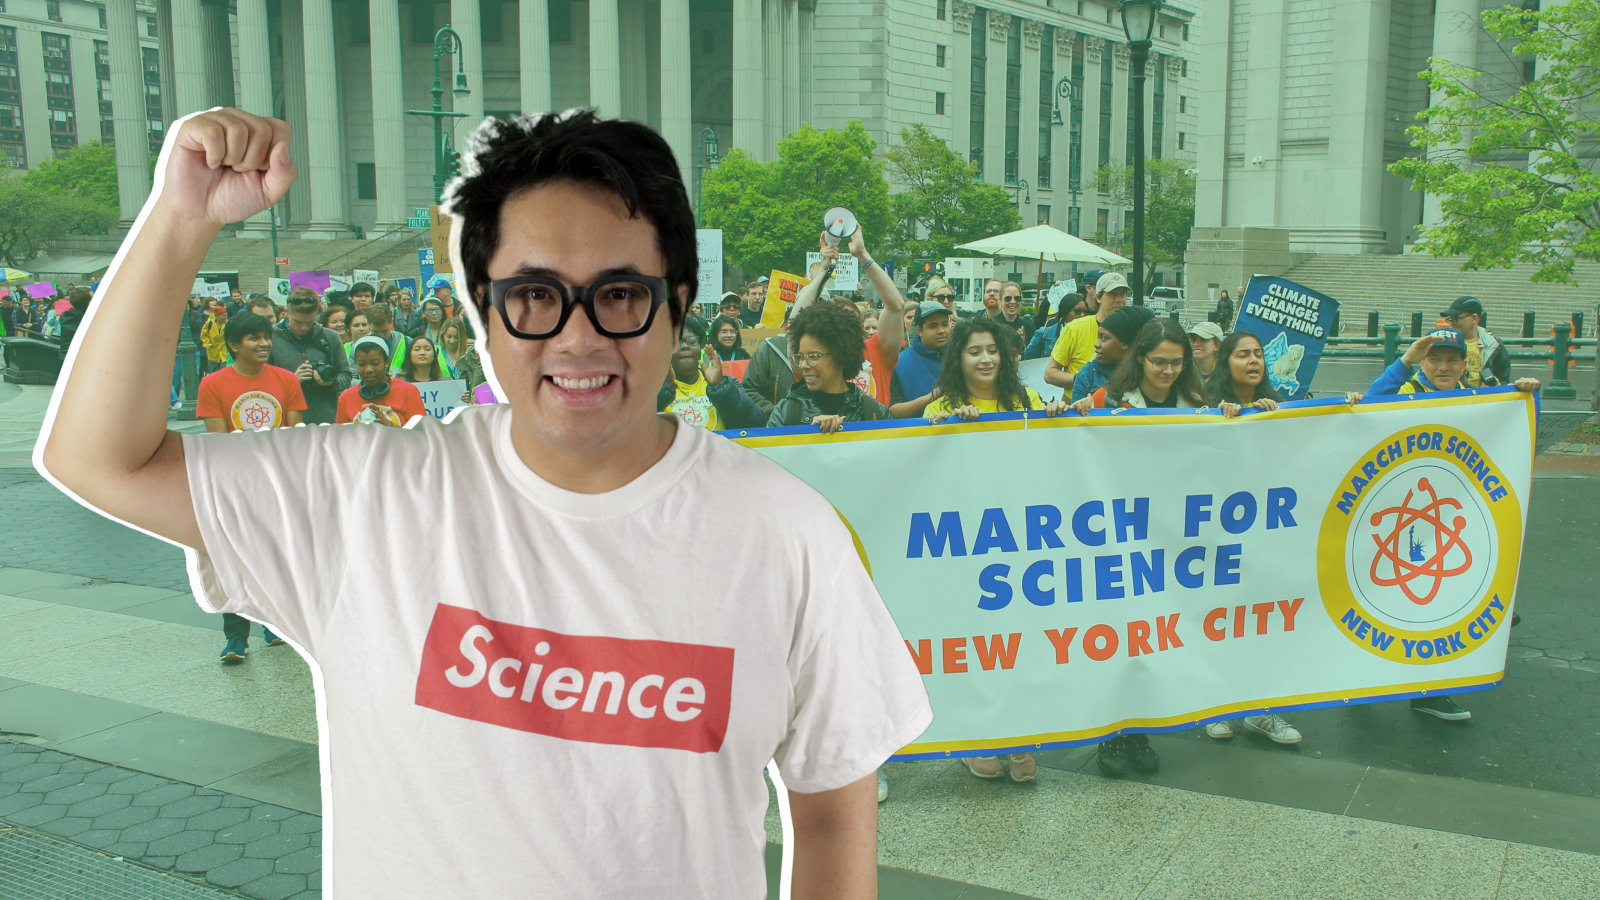 Lucky Tran, March for Science